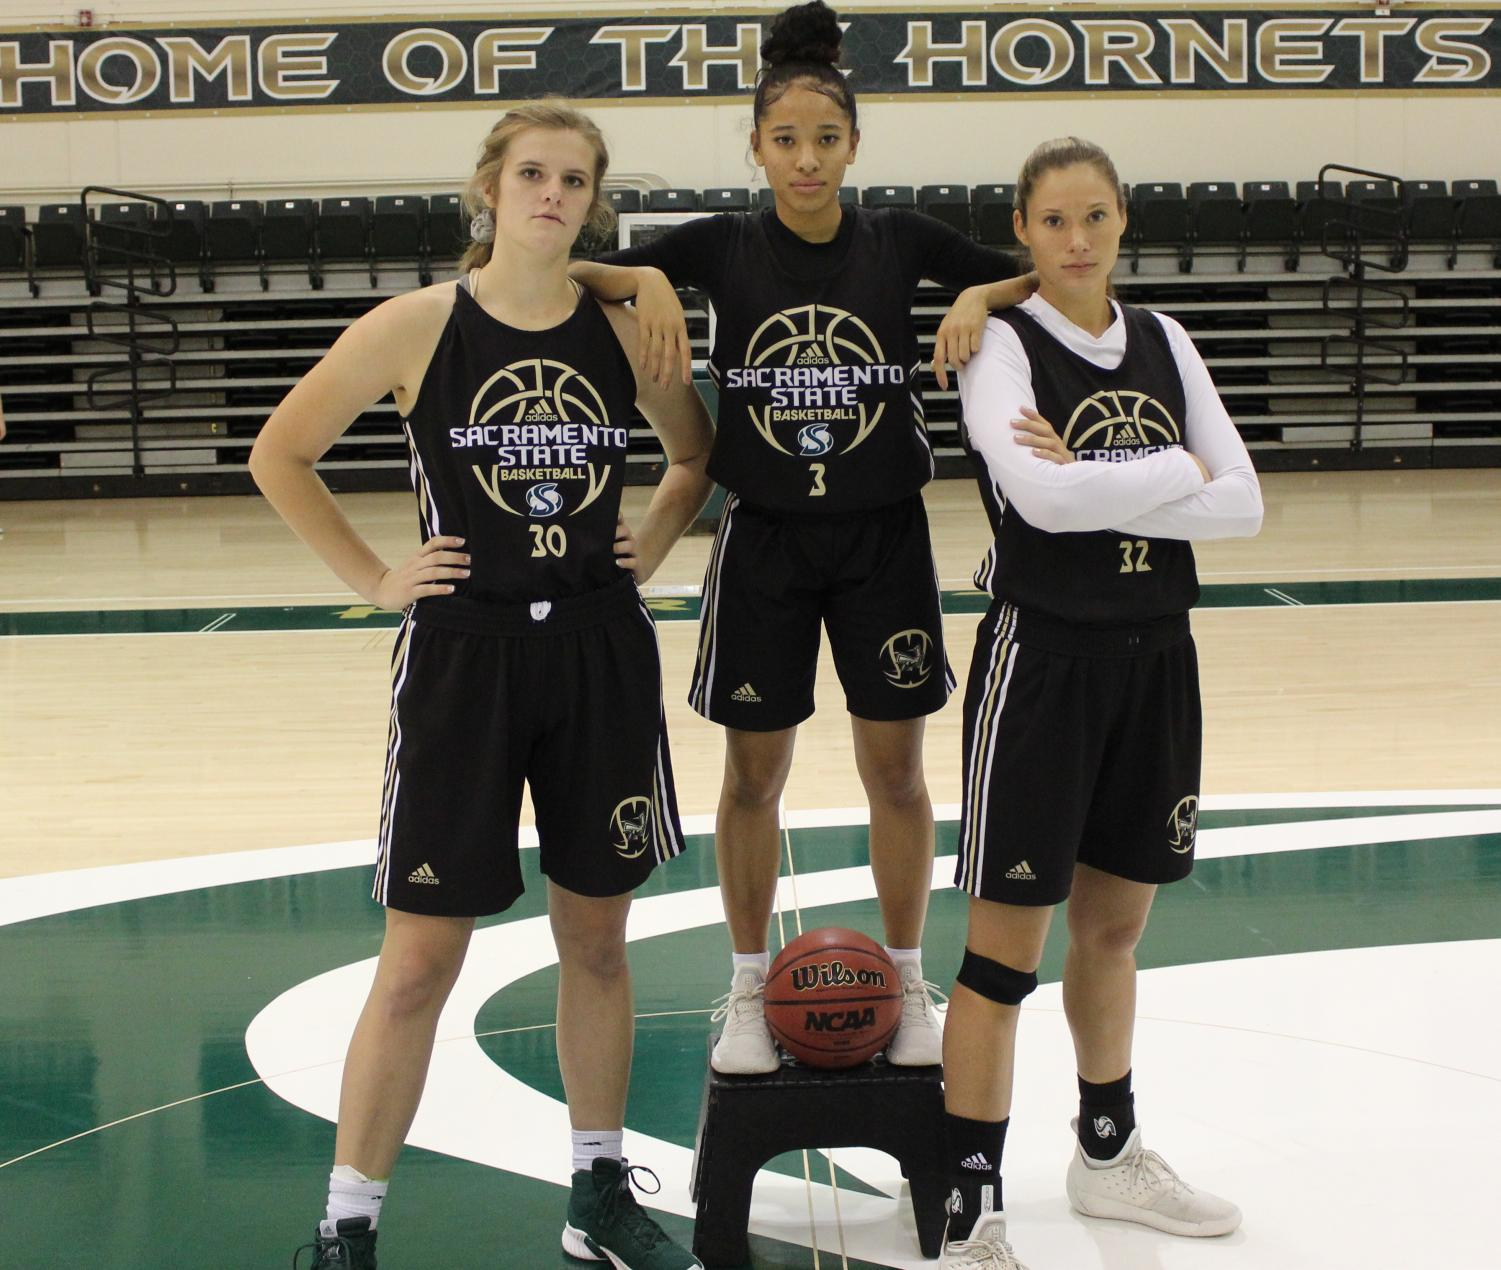 Juniors (from left to right) Kennedy Nicholas, Tiara Scott and Hannah Friend, re-enact the Cleveland Cavaliers famous